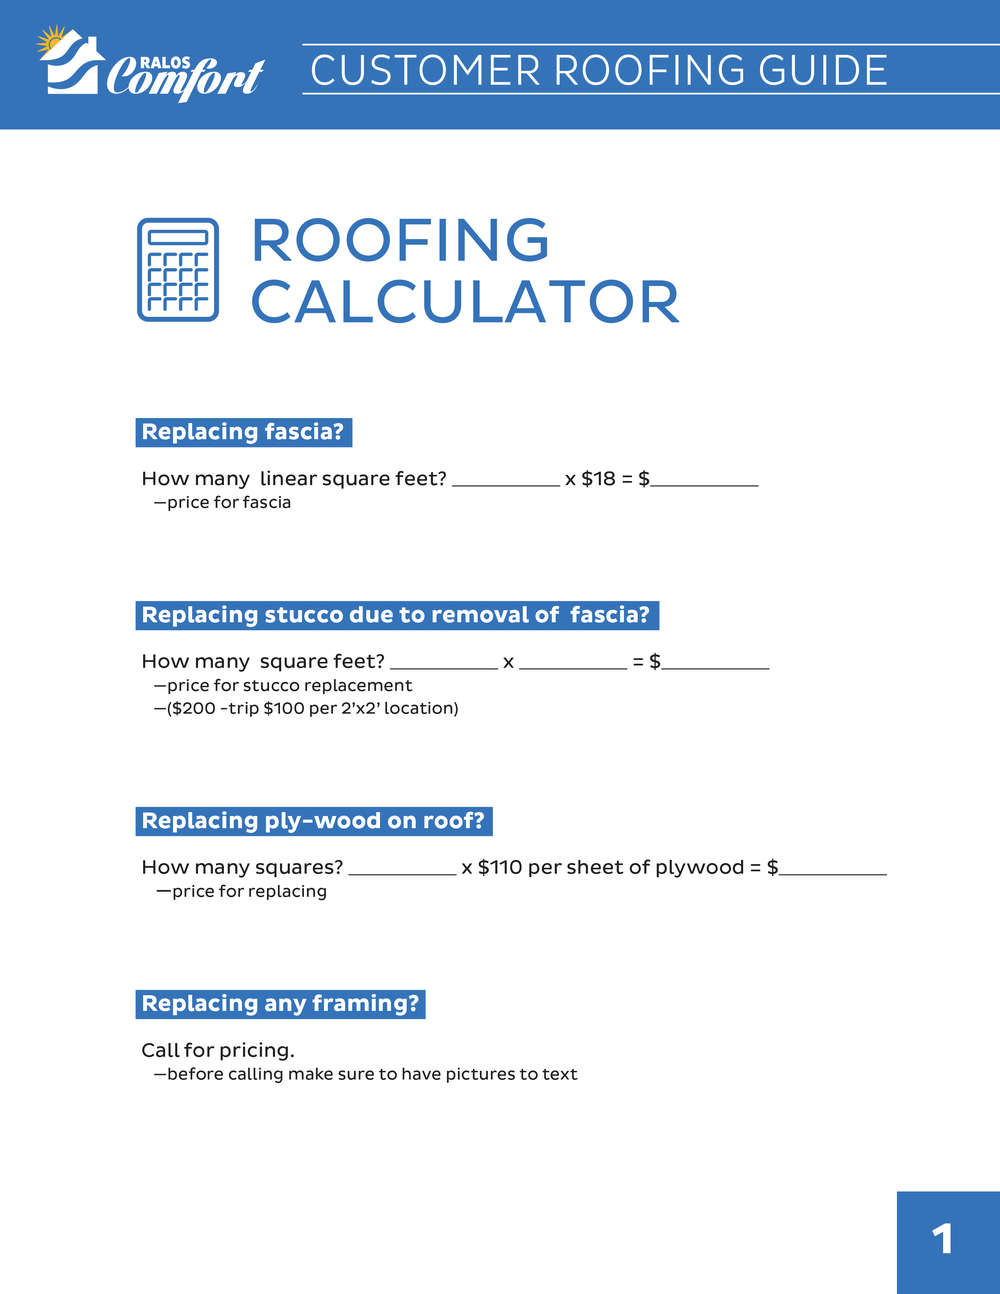 Roofing Guide (9.14.17)-1.png